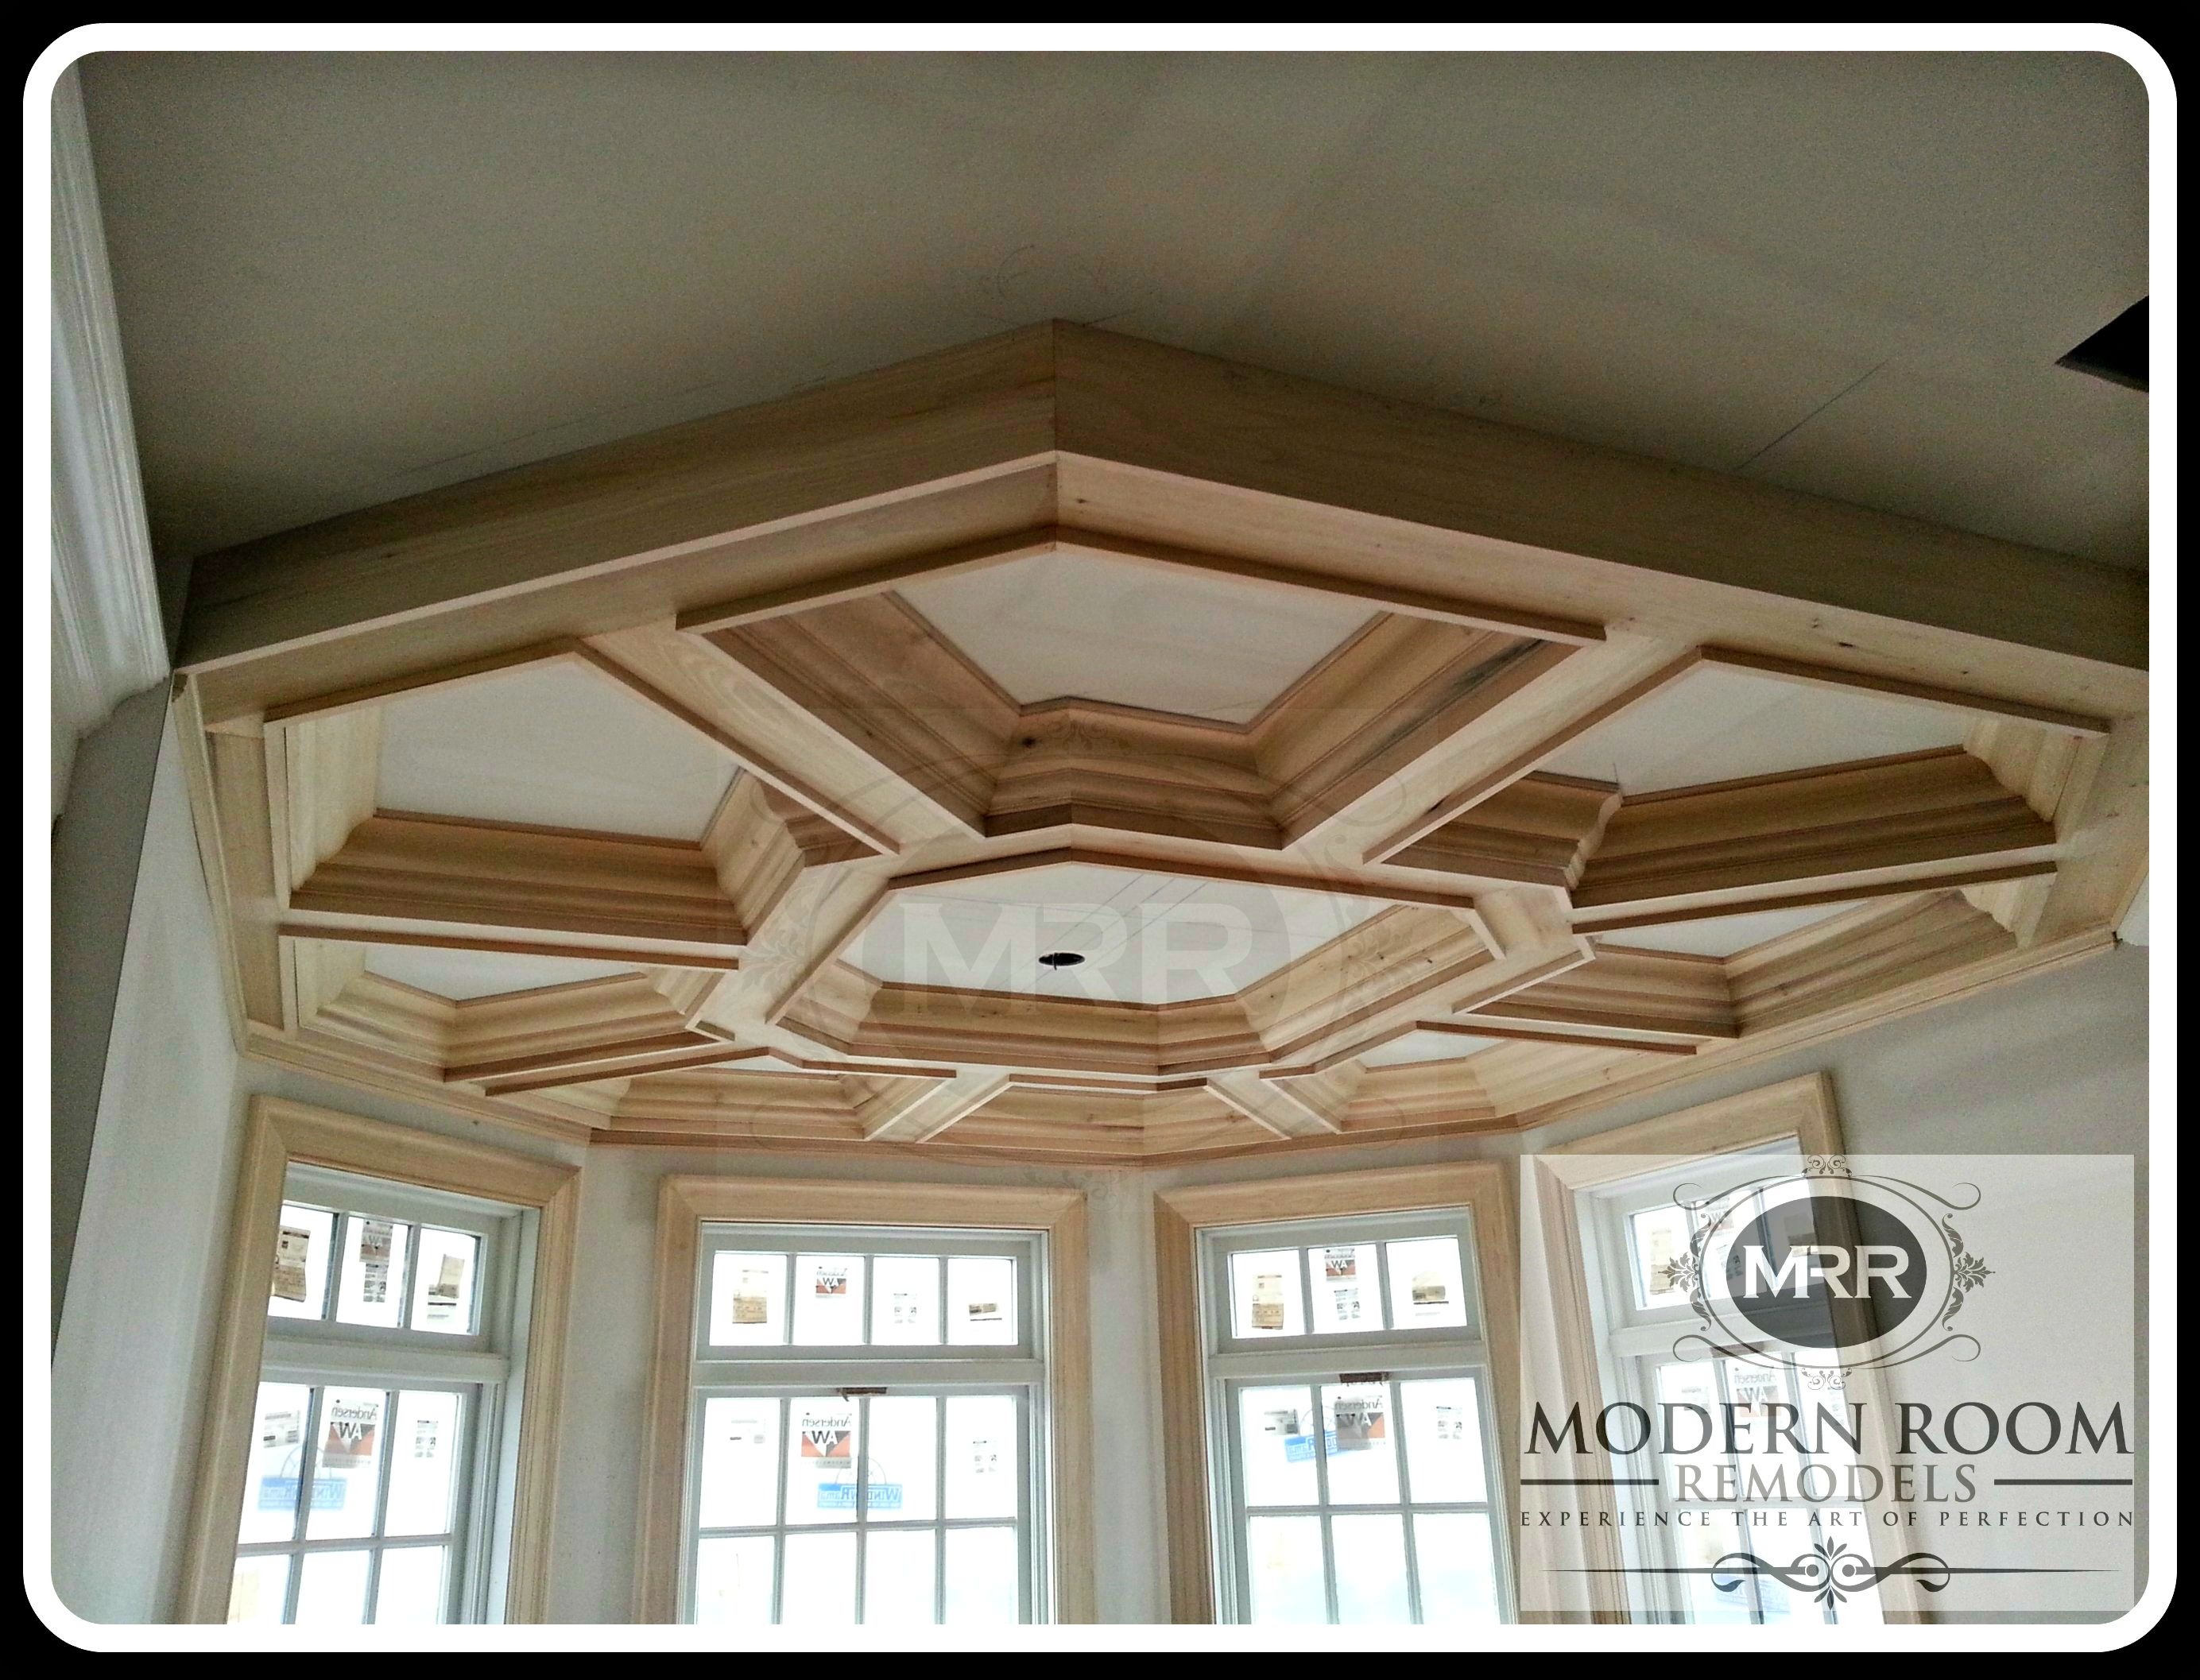 Octagon Coffered Ceiling Coffered Ceilings Pinterest Coffer Ceiling And Coffered Ceilings